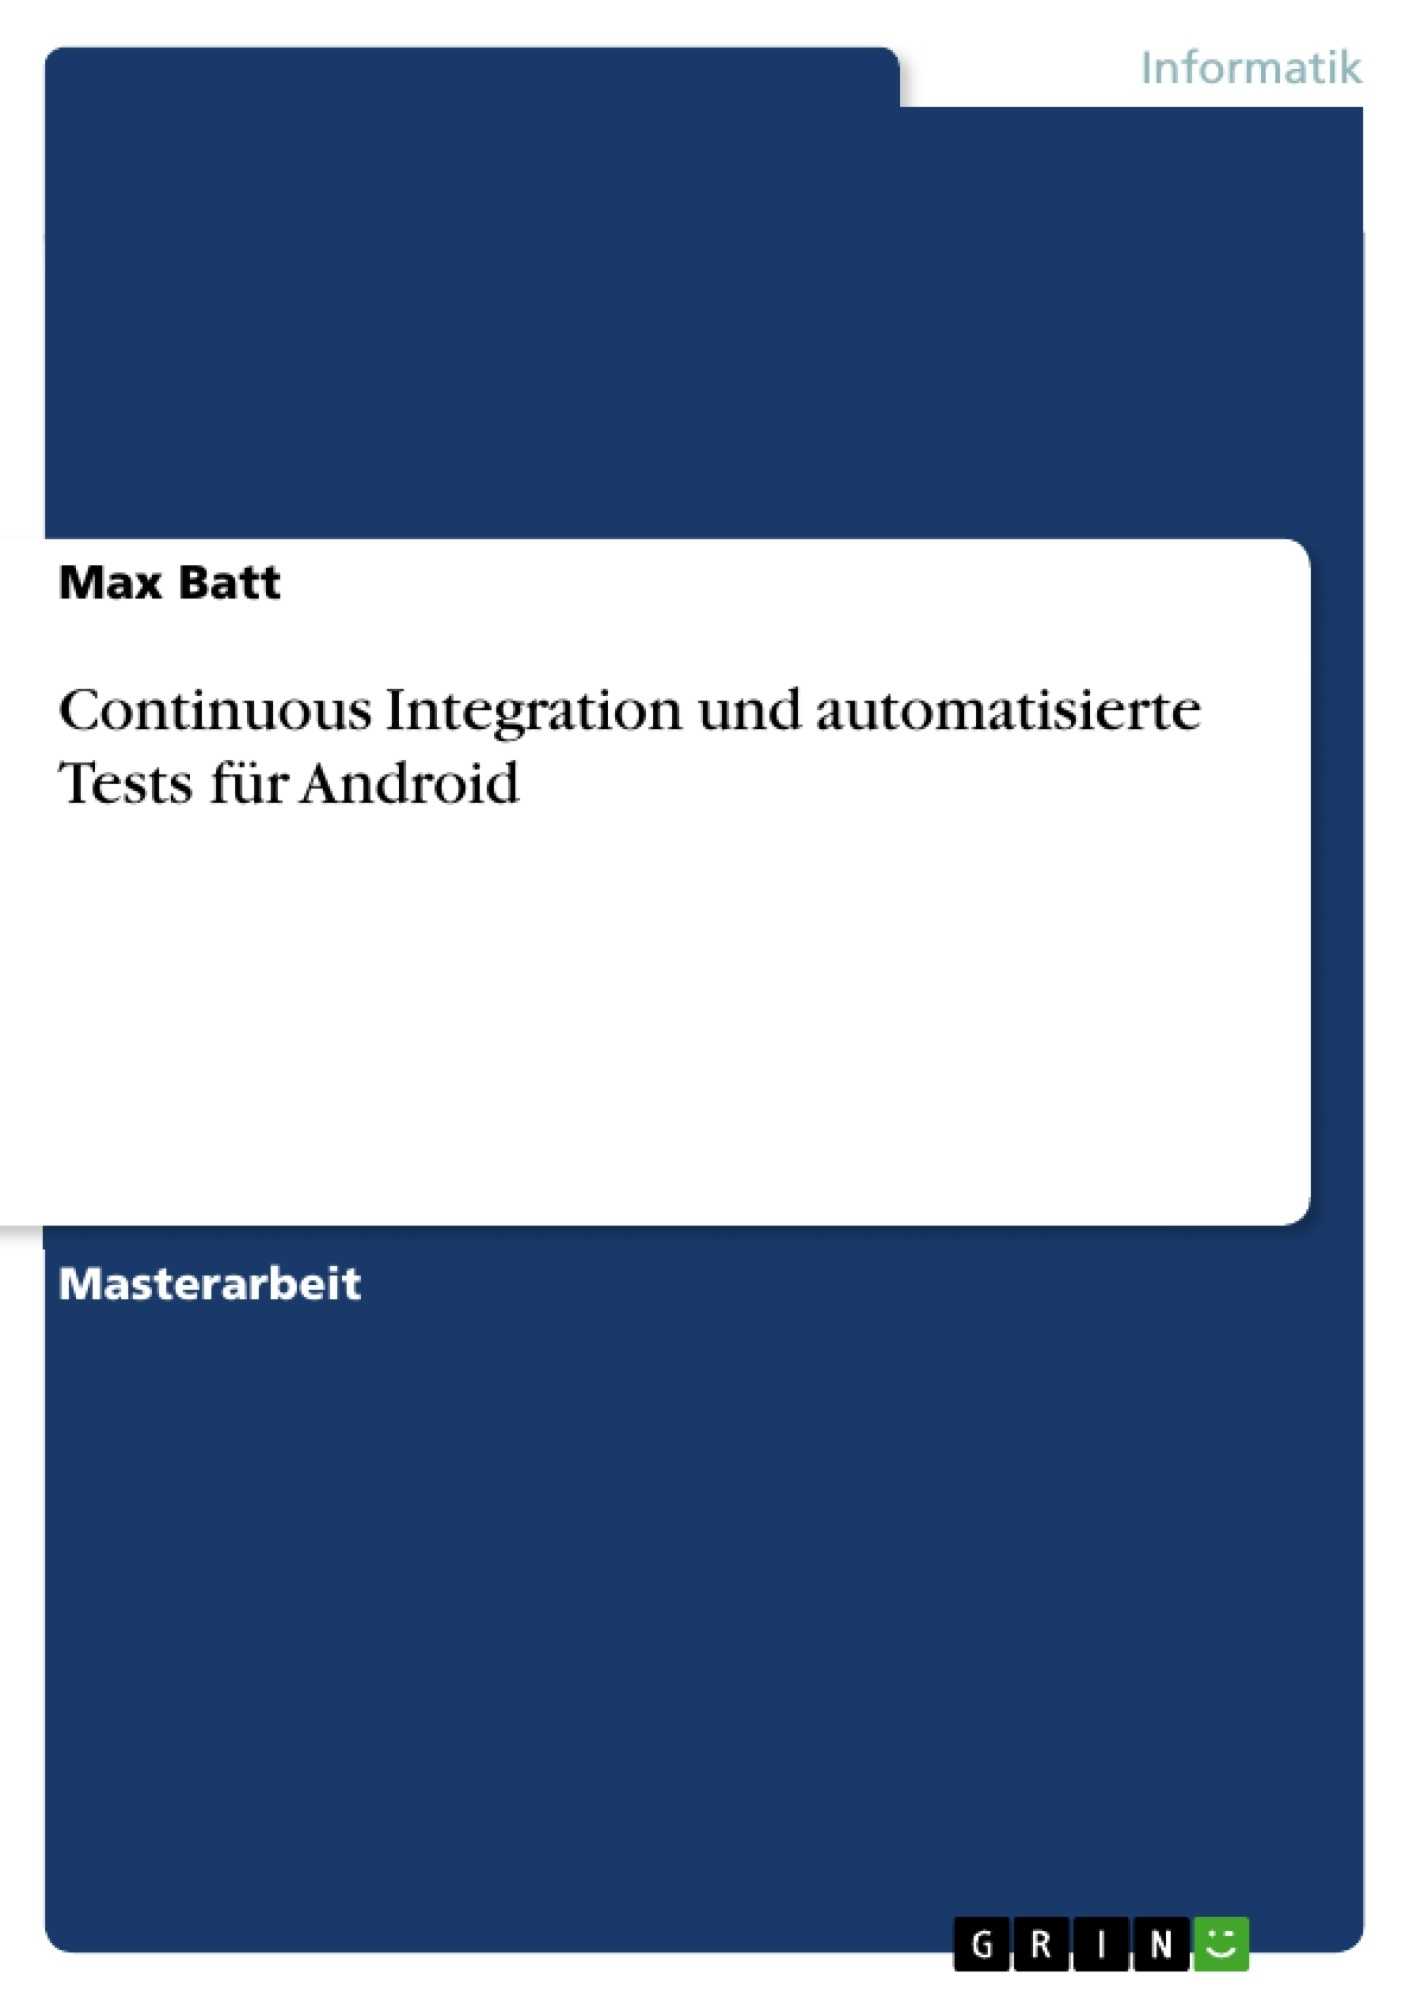 Titel: Continuous Integration und automatisierte Tests für Android